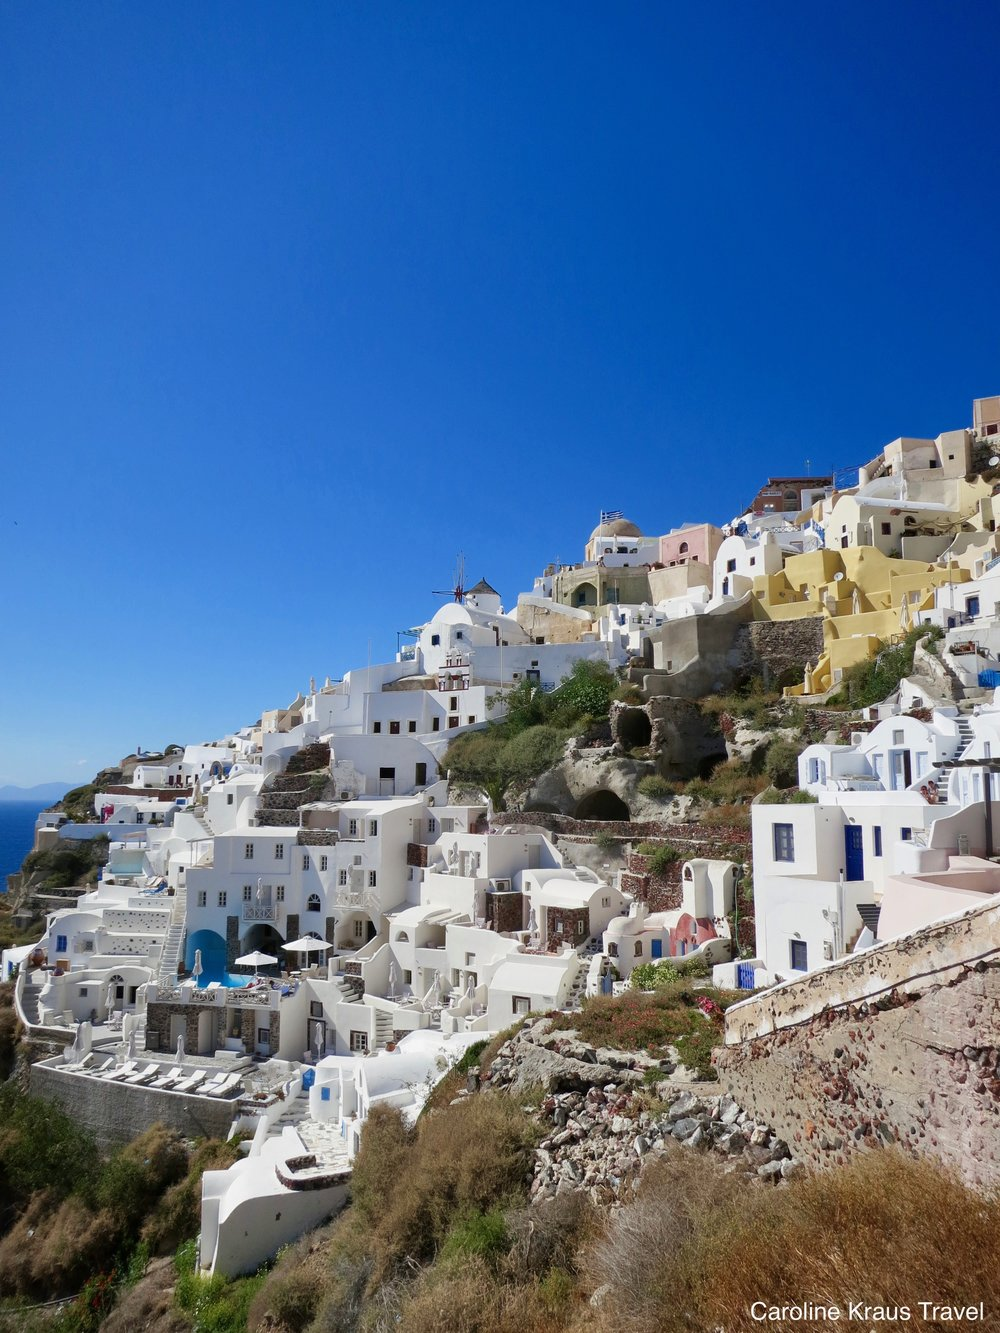 Town of Oia, Santorini, Greece